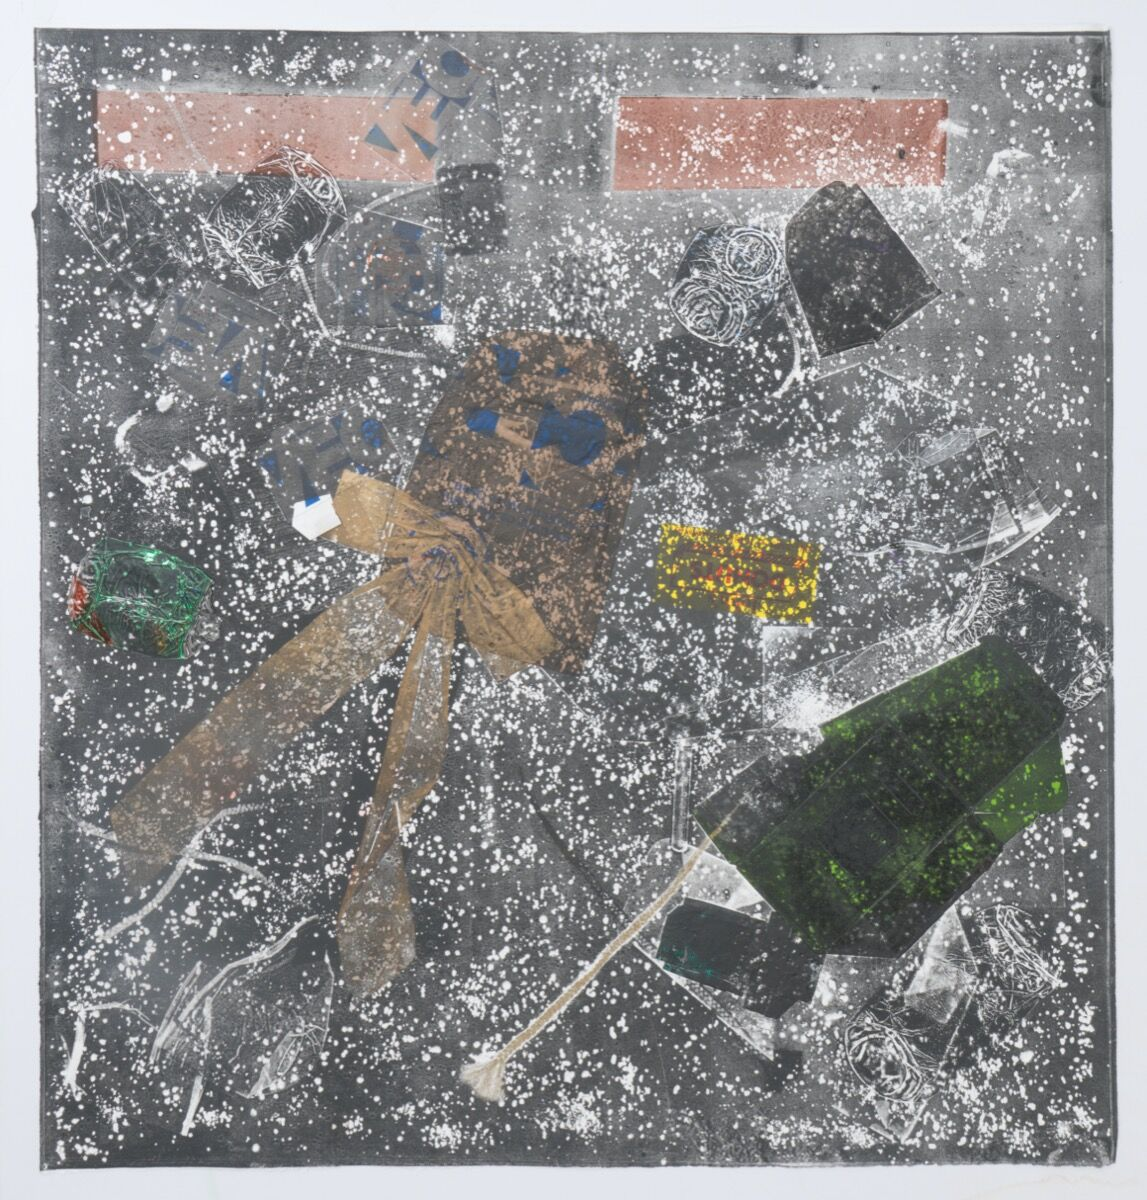 """Kahlil Robert Irving, Street Square:  """"Food and Liquor,"""" 2017. Courtesy of the artist and Callicoon Fine Arts, New York."""